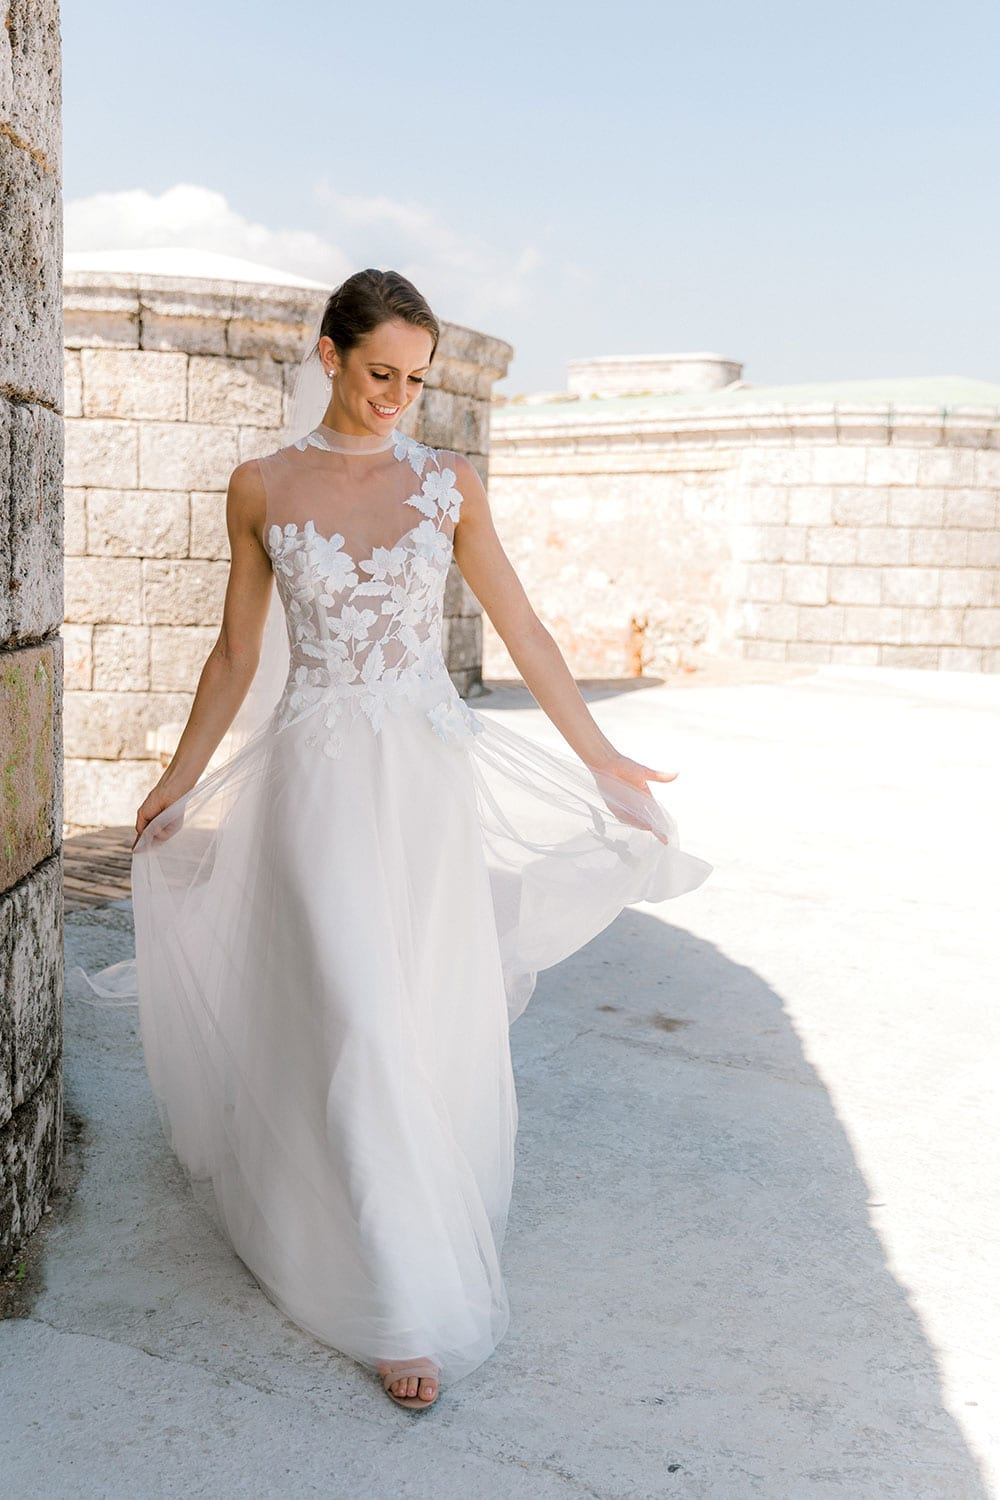 Model wearing Vinka Design Julia Wedding Dress, a High Neck Tulle Wedding Gown walking along a wall in Havana